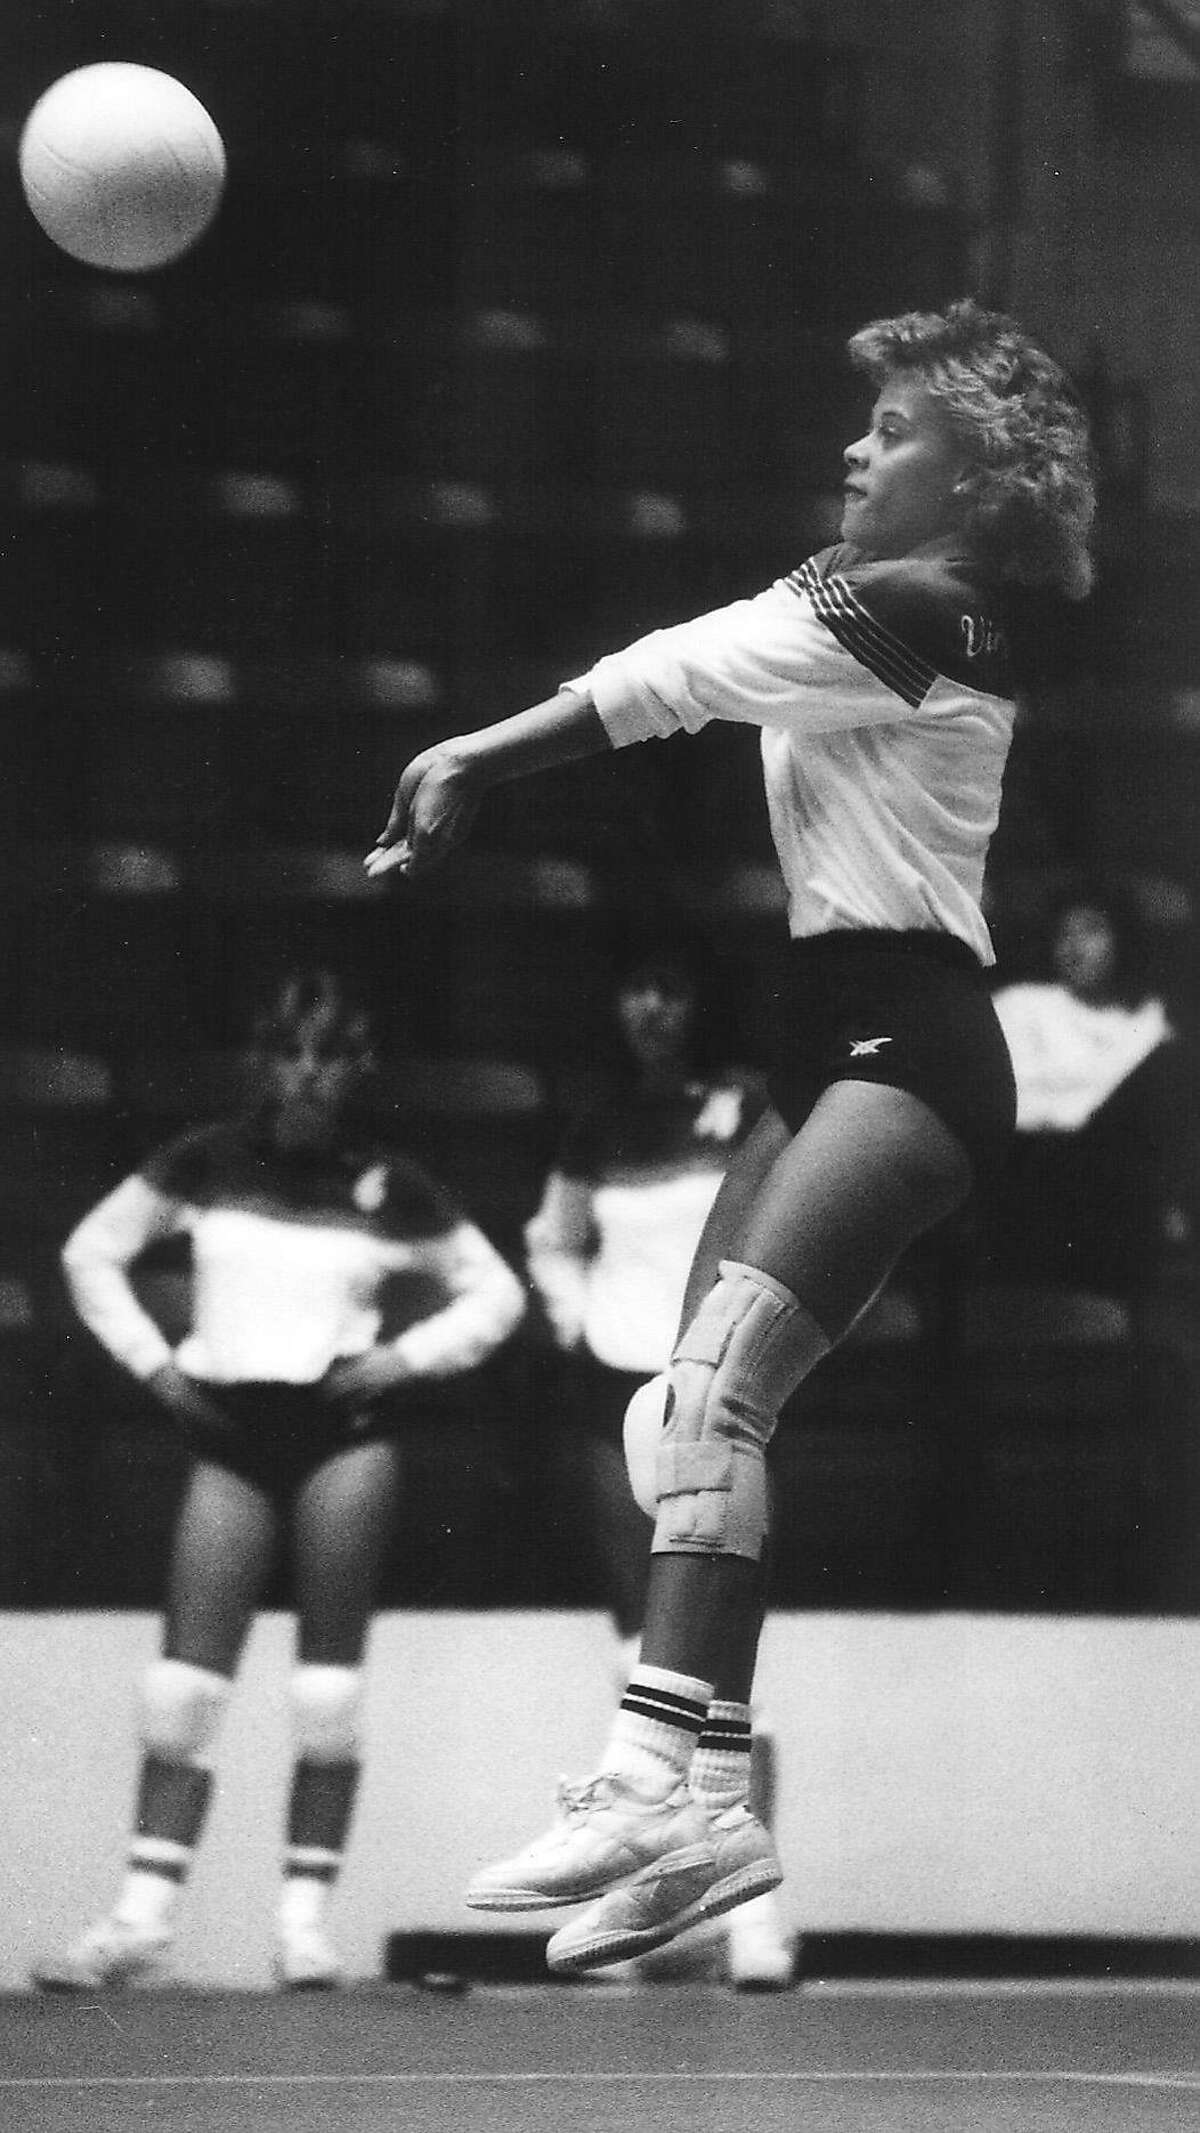 Sonya Curry (formerly Sonya Adams) who is Steph Curry's mother attended Virginia Tech University from 1984-1987 where she played volleyball.